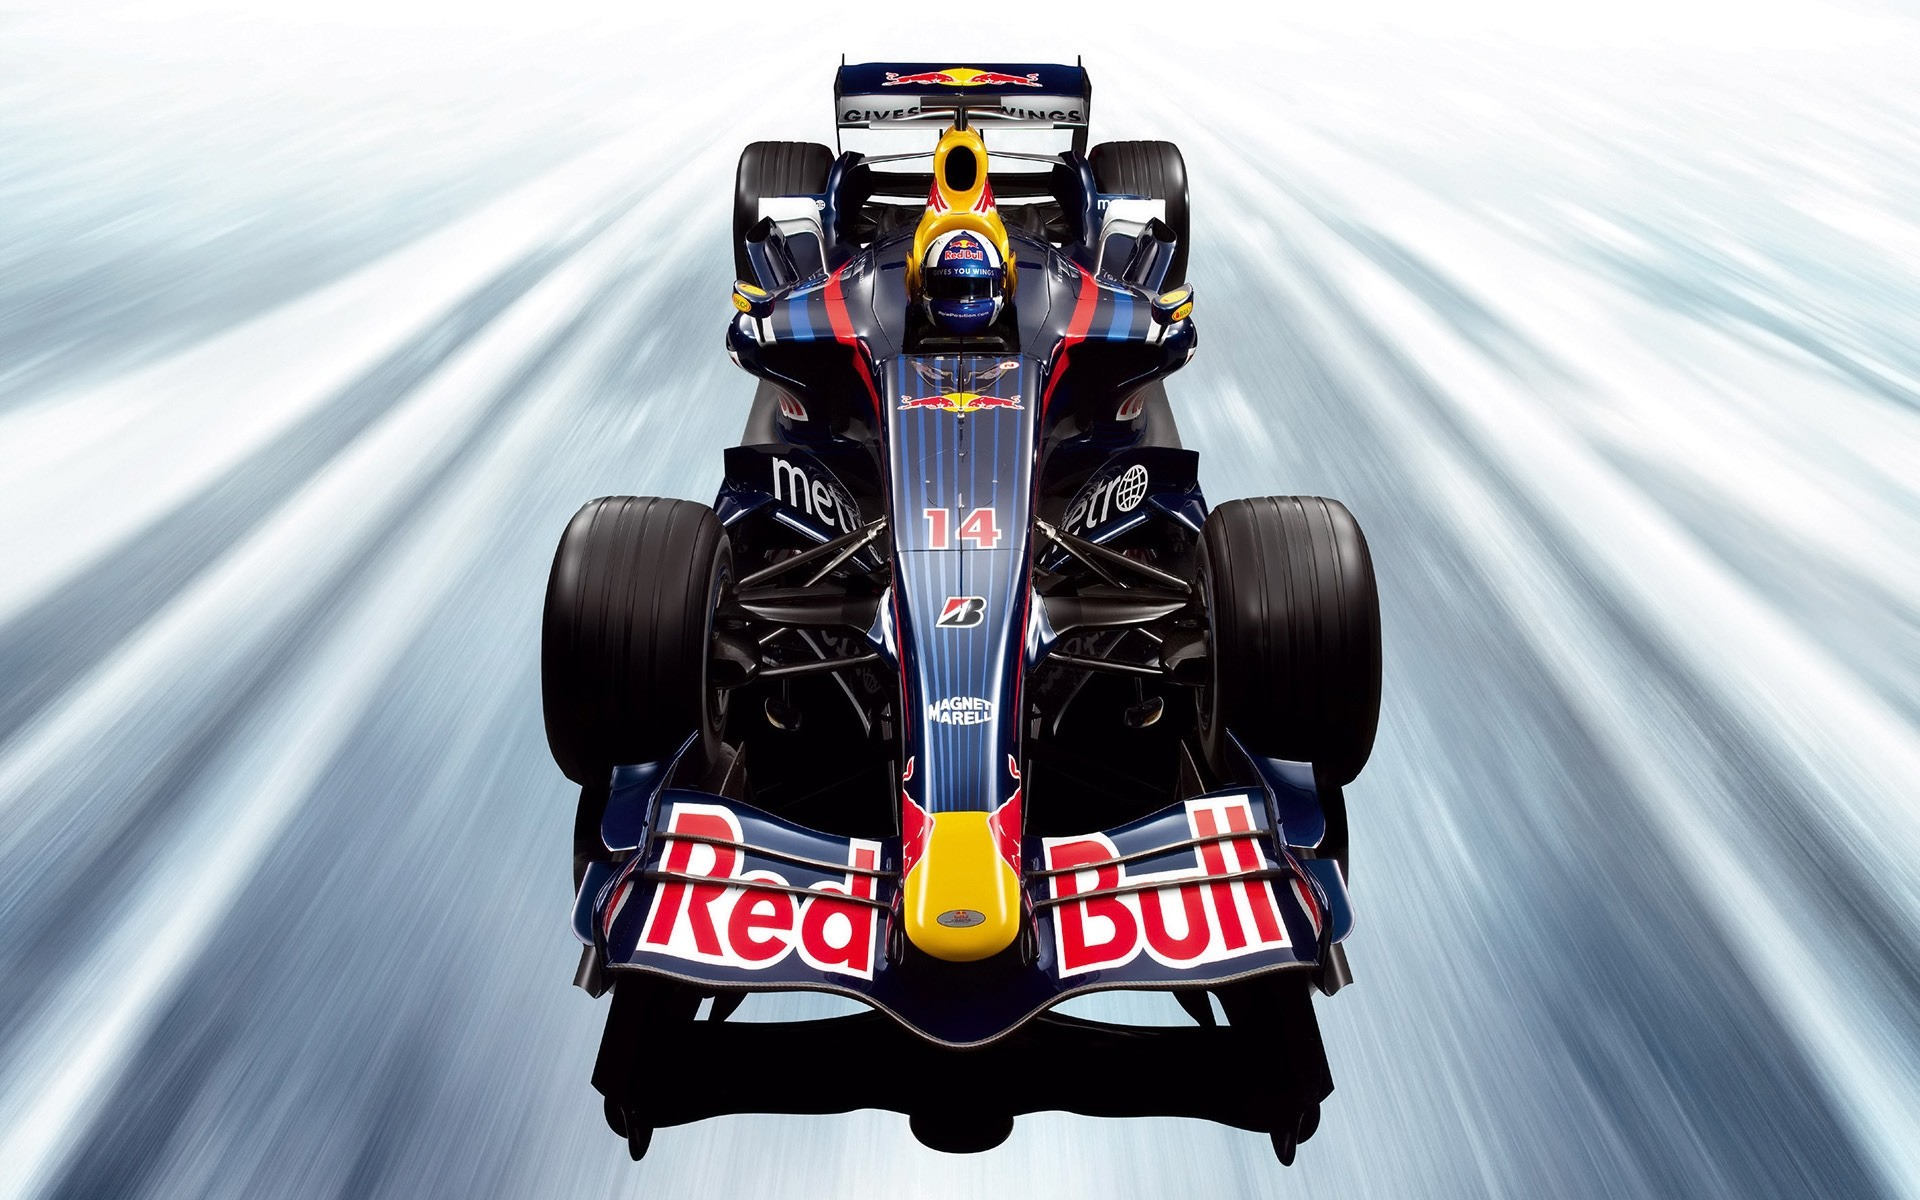 Red Bull Rb3 F1 Studio Front Android Wallpapers